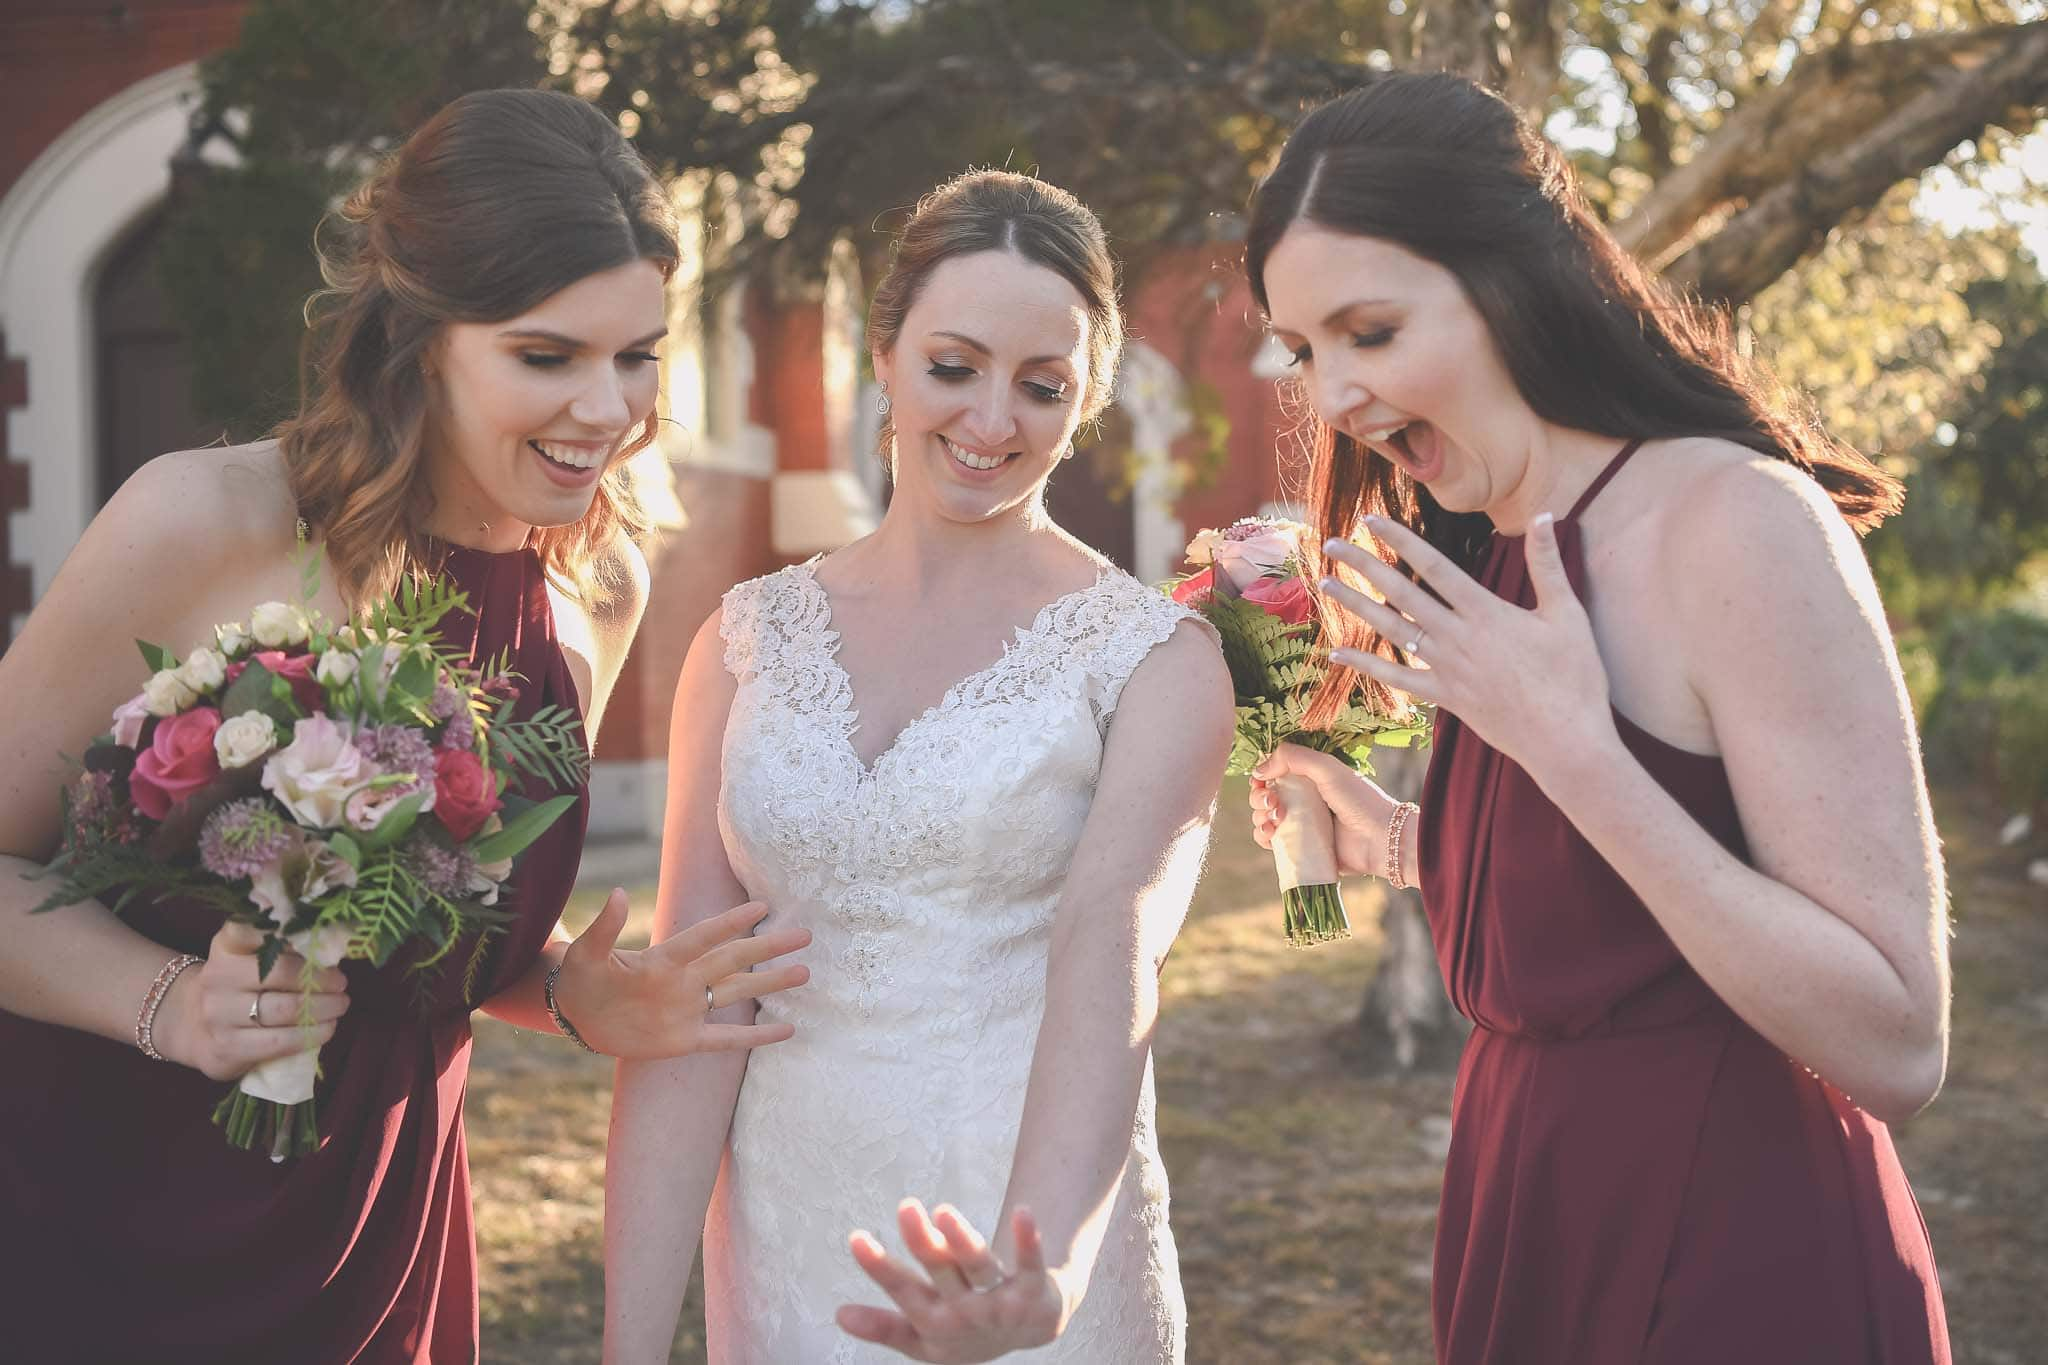 Beautiful wedding photography of a bride and her bridesmaids inspecting her new ring after her Melbourne wedding. Photography captured buy Pause The Moment.